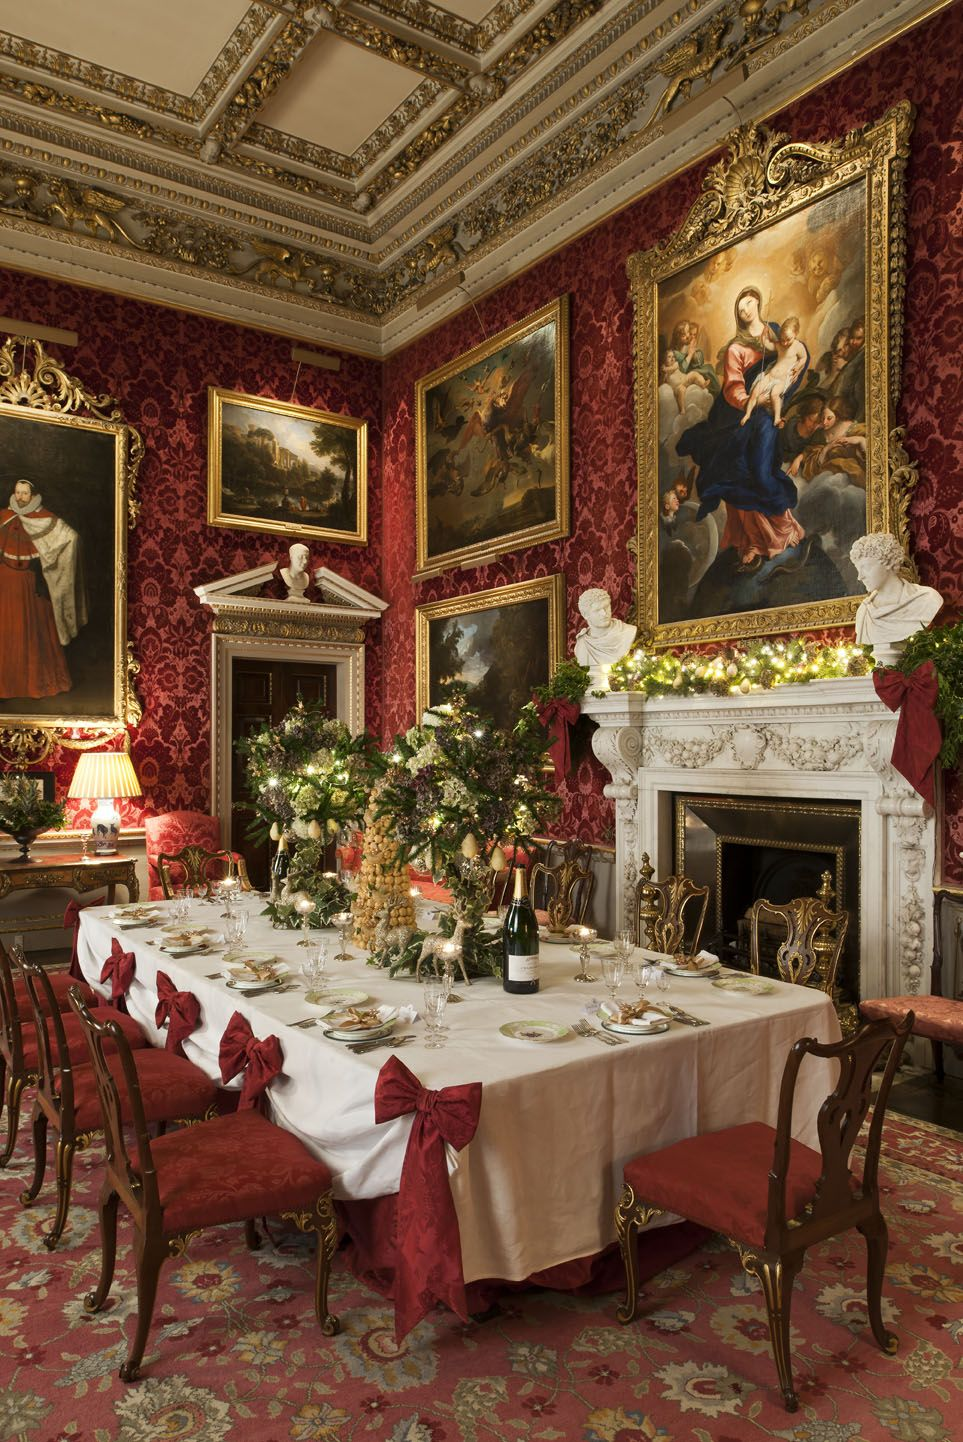 Chatsworth House Room: The North Dining Room With The Table Set Ready For The